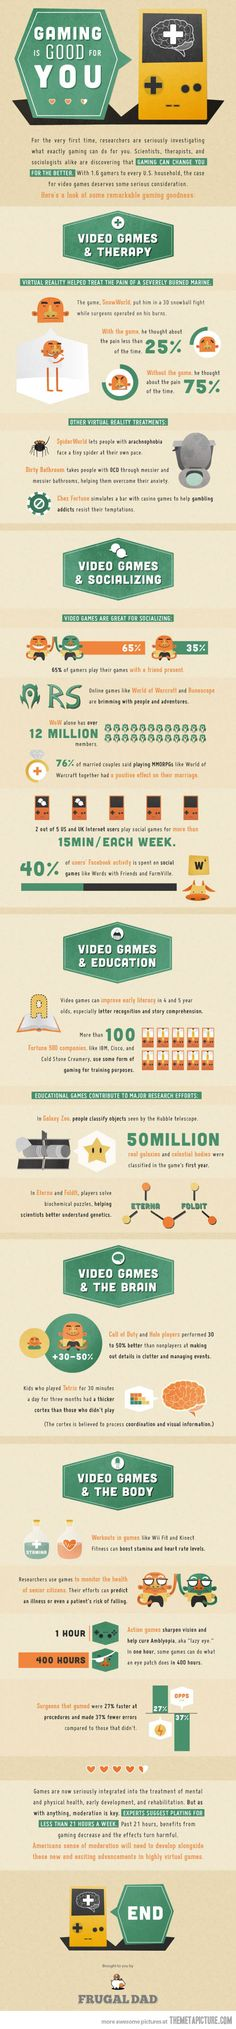 Gaming is good for you…